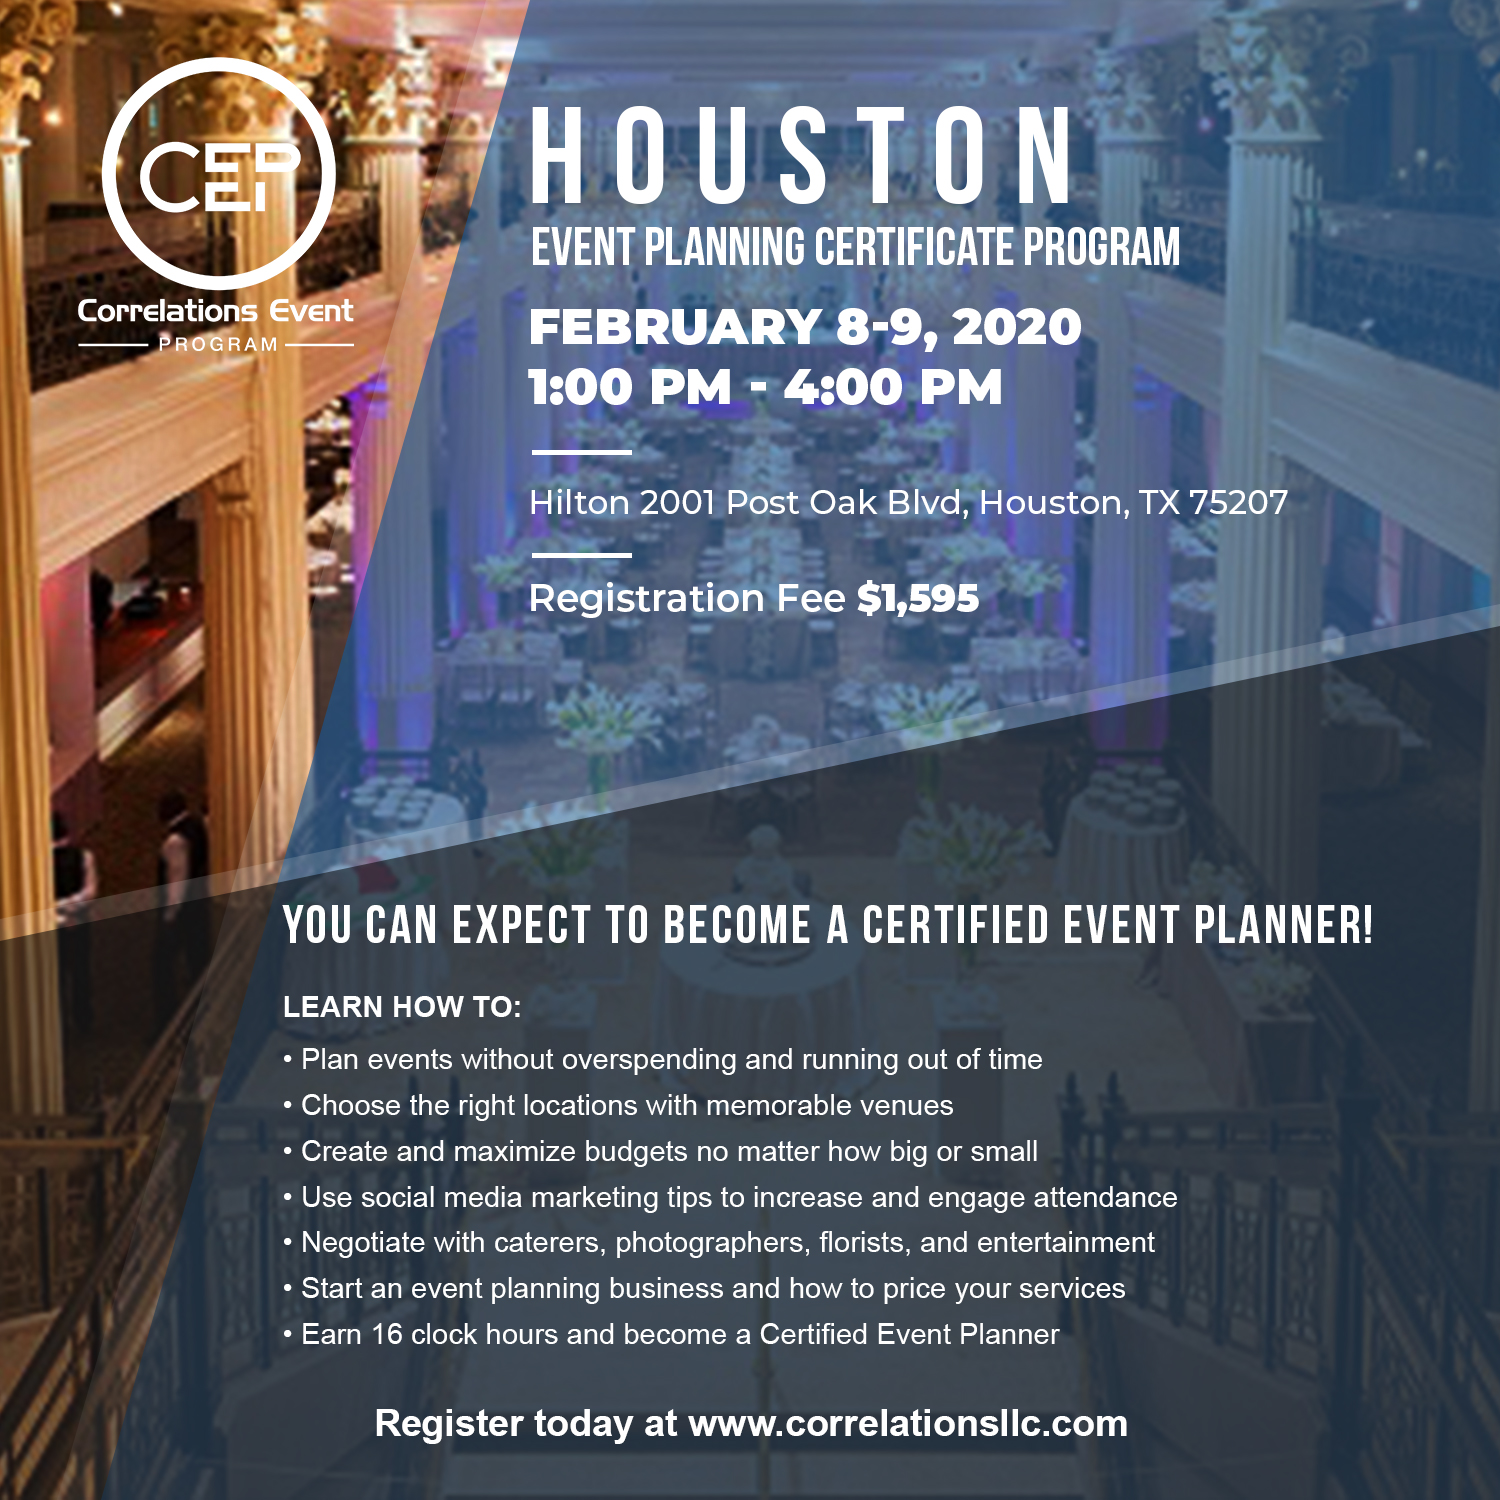 2 Day Houston Event Planning Certificate Program